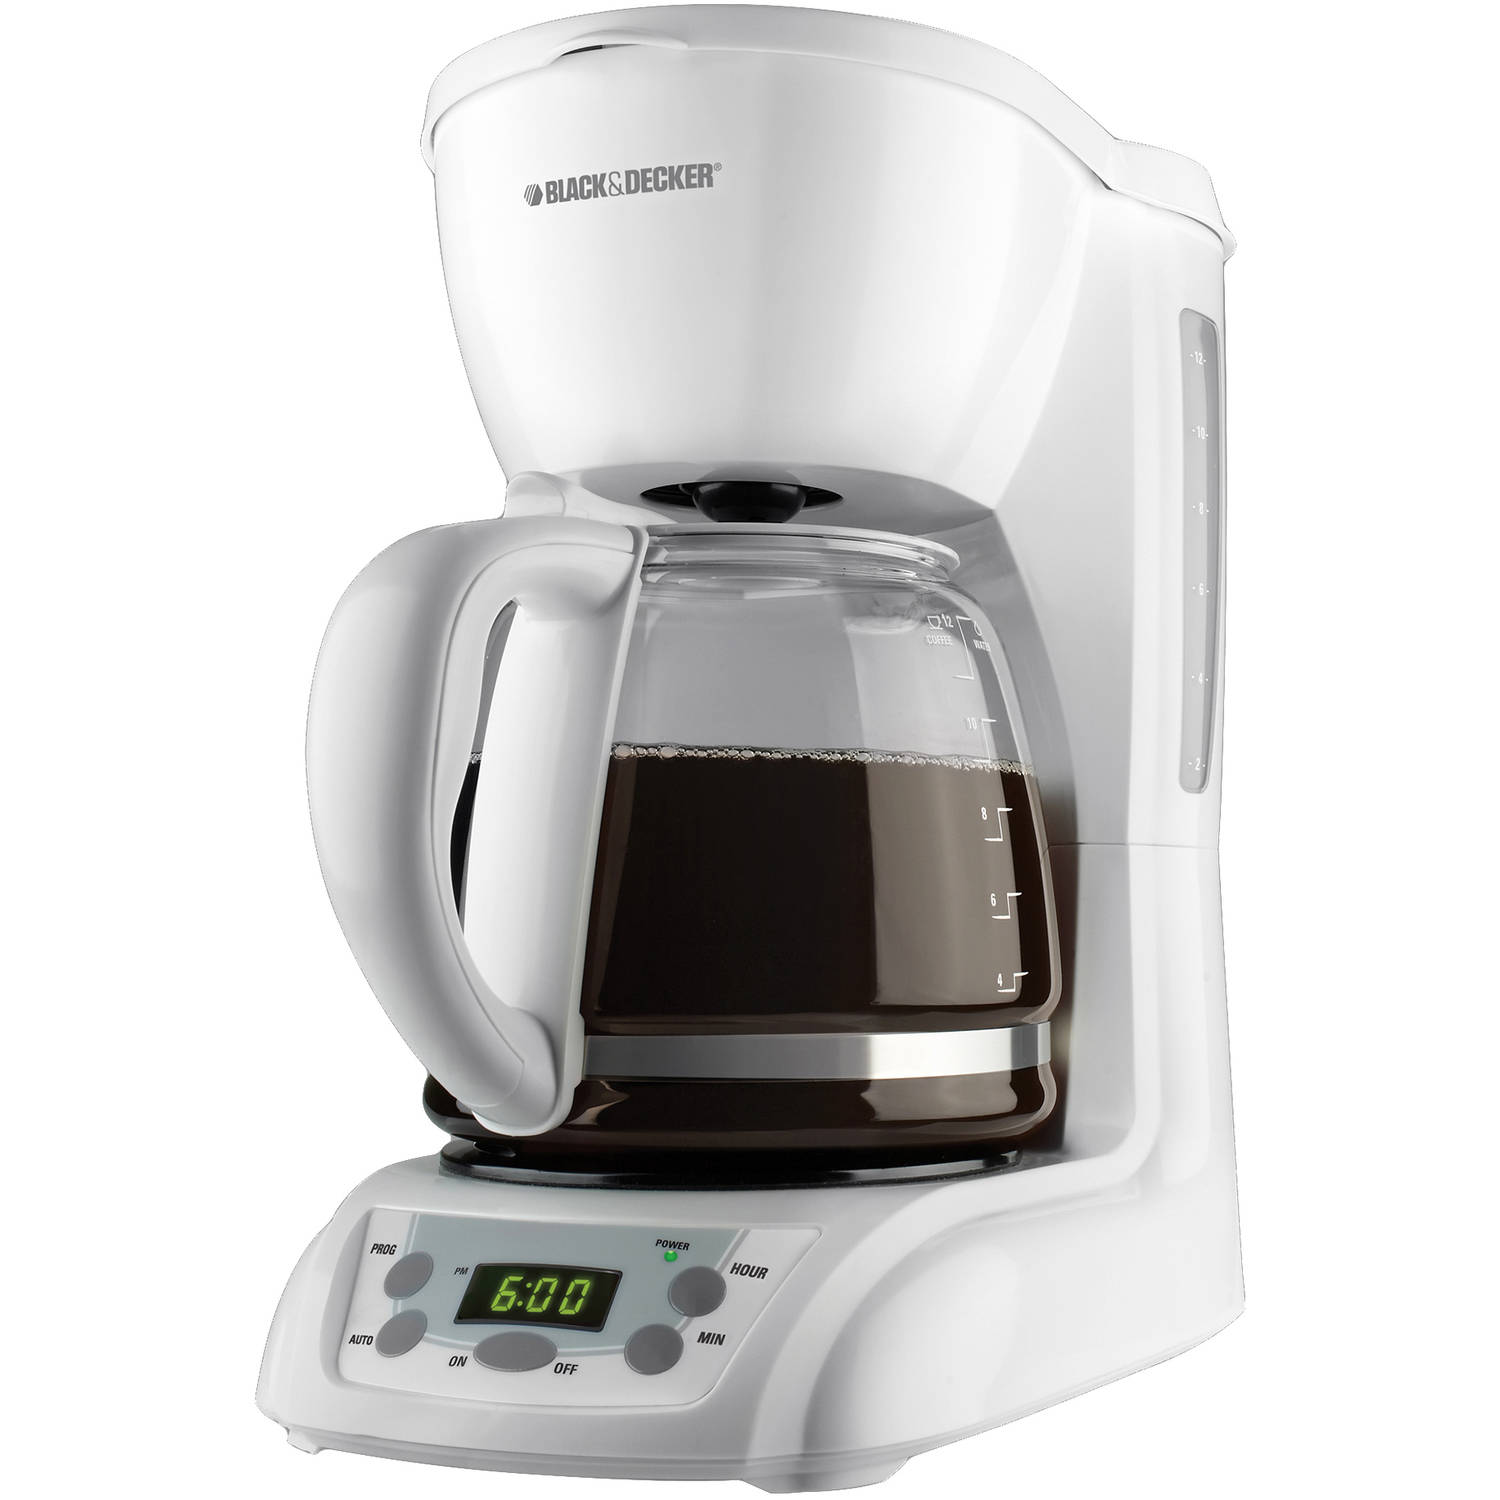 Black & Decker 12 Cup Programmable Coffee Maker, 1 Each